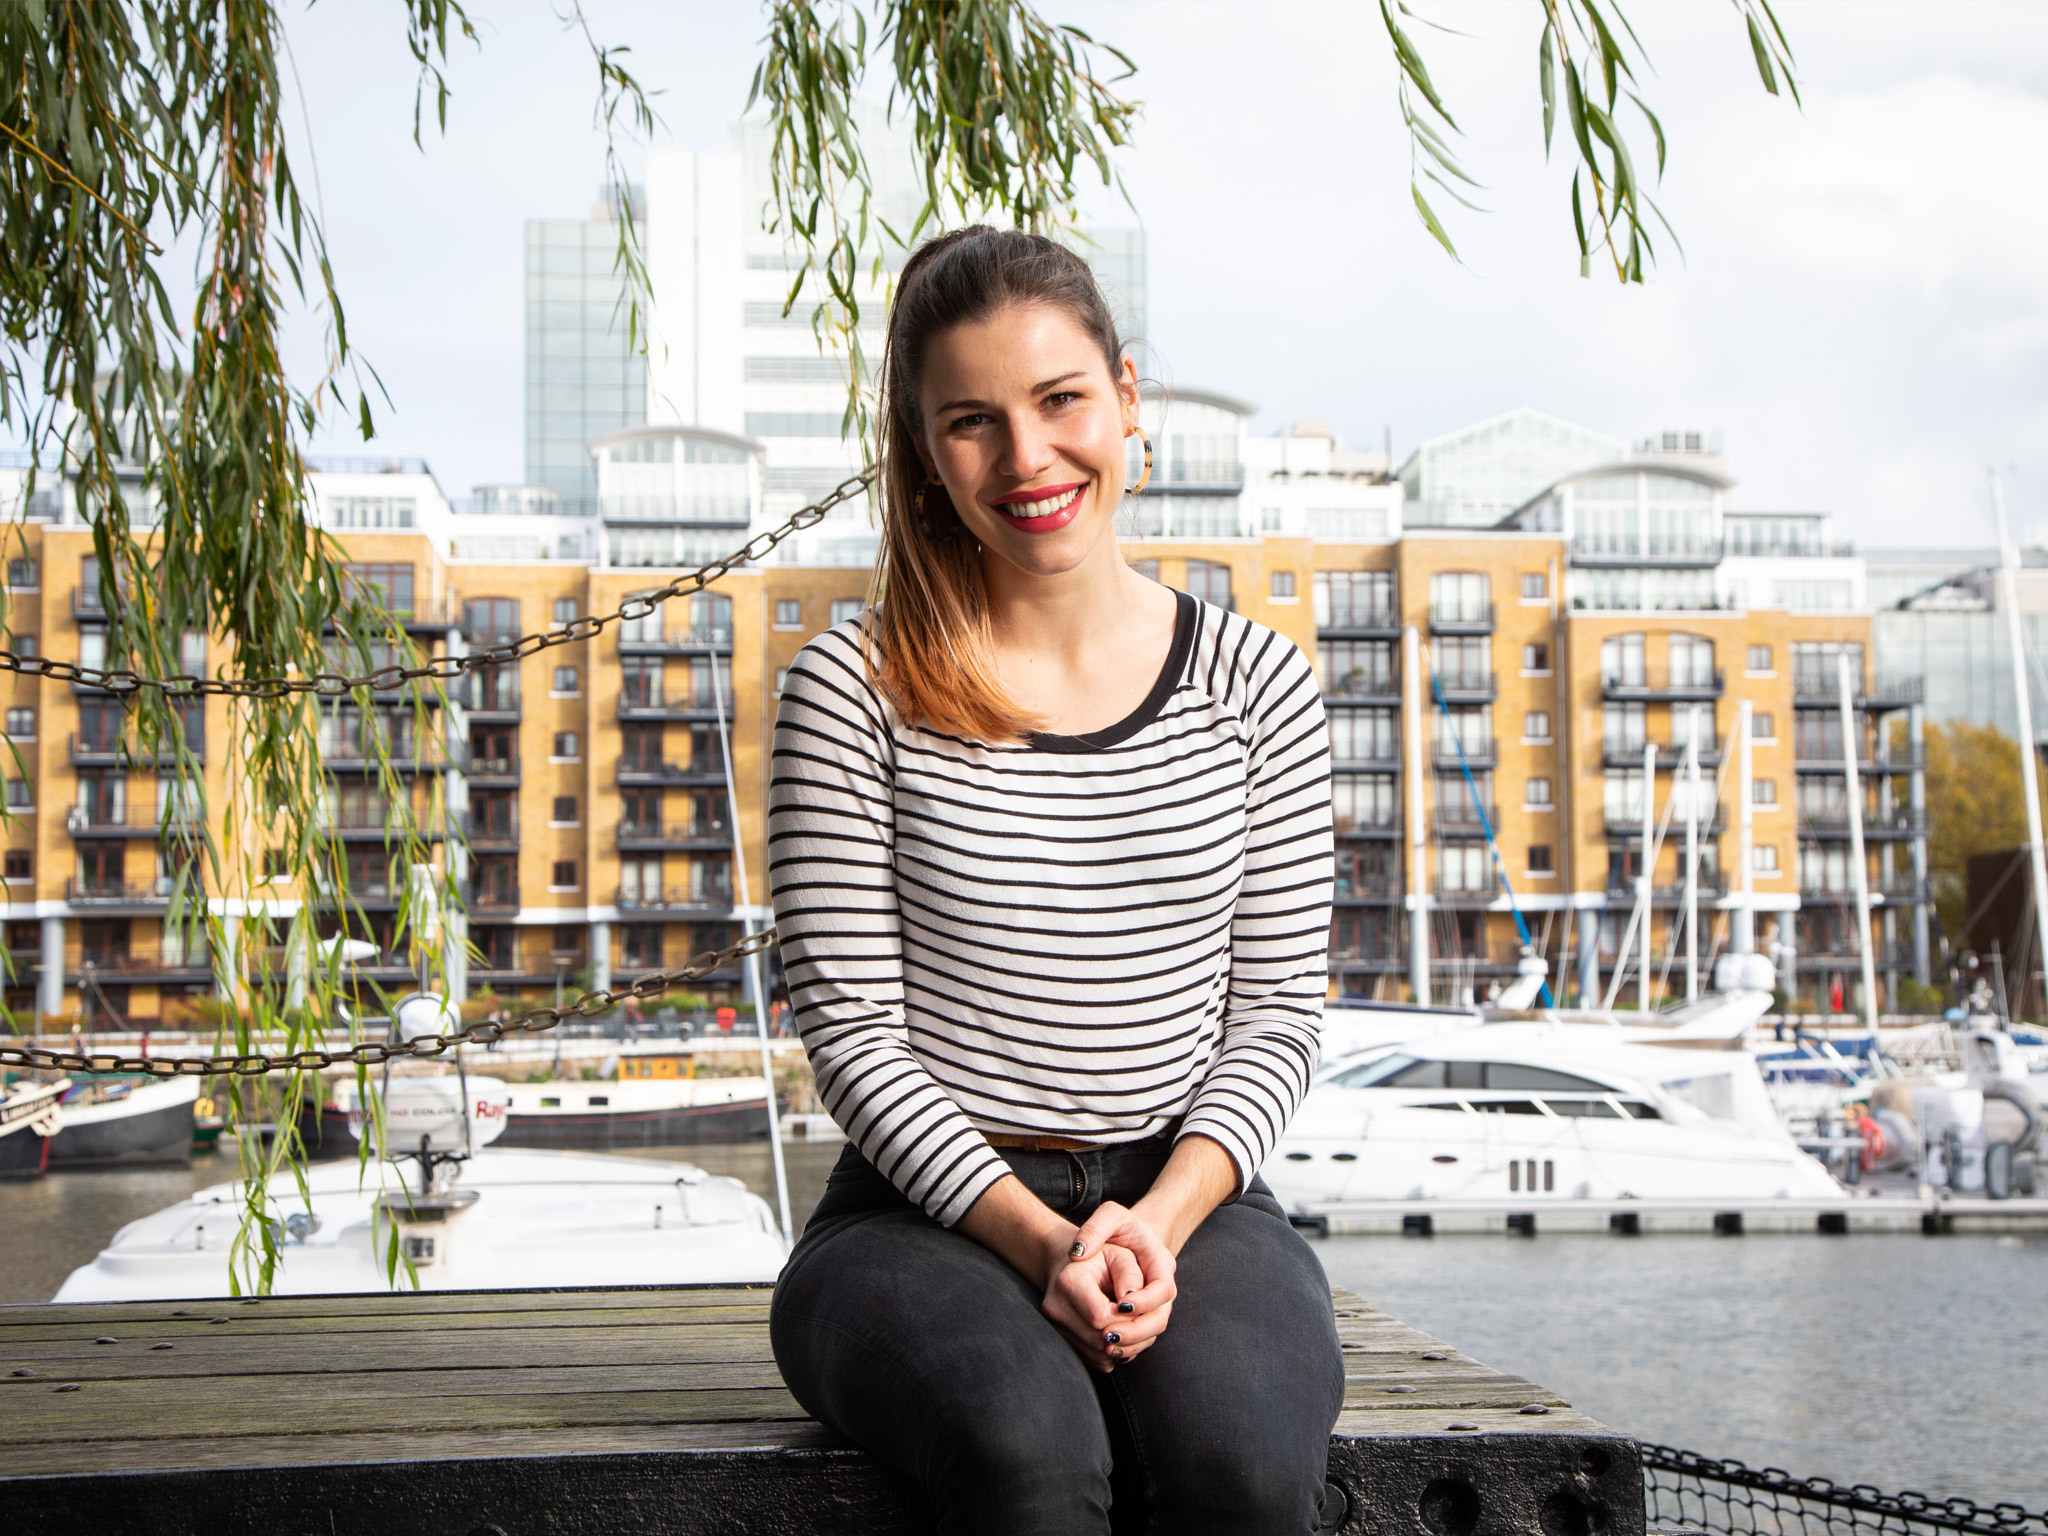 Manon from 'Bake Off' reveals how London inspired her to start baking